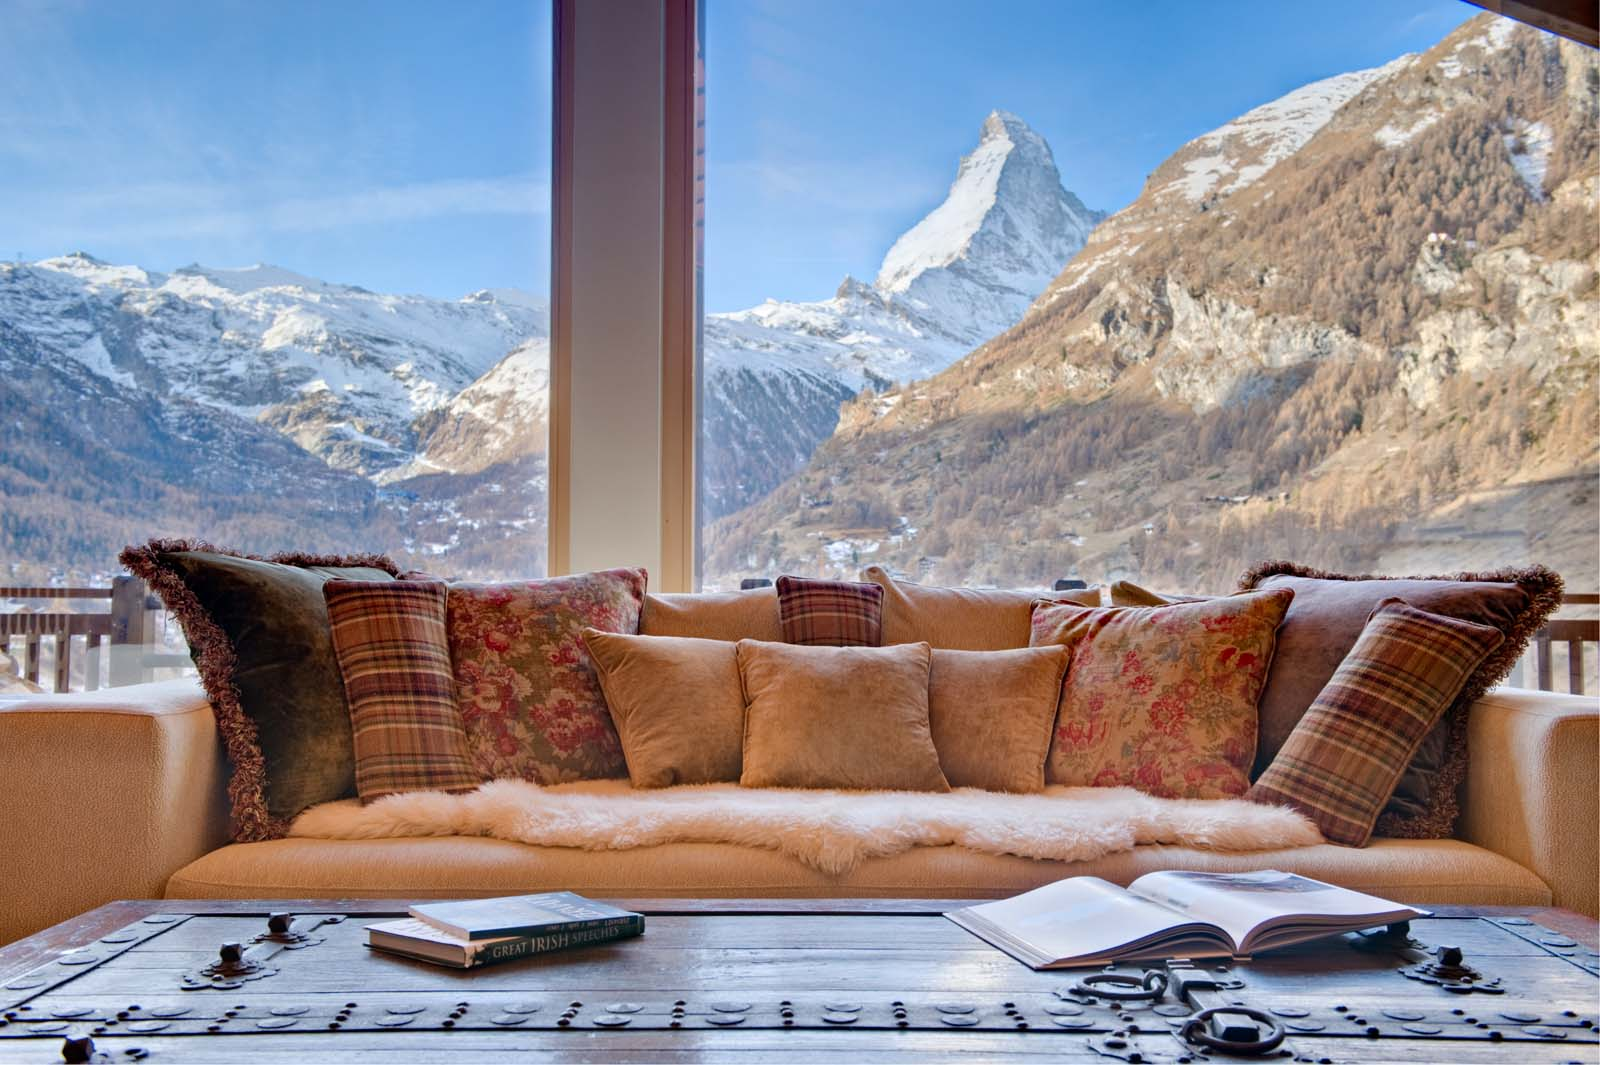 Chalet grace in zermatt by skiboutique for Design hotel ski